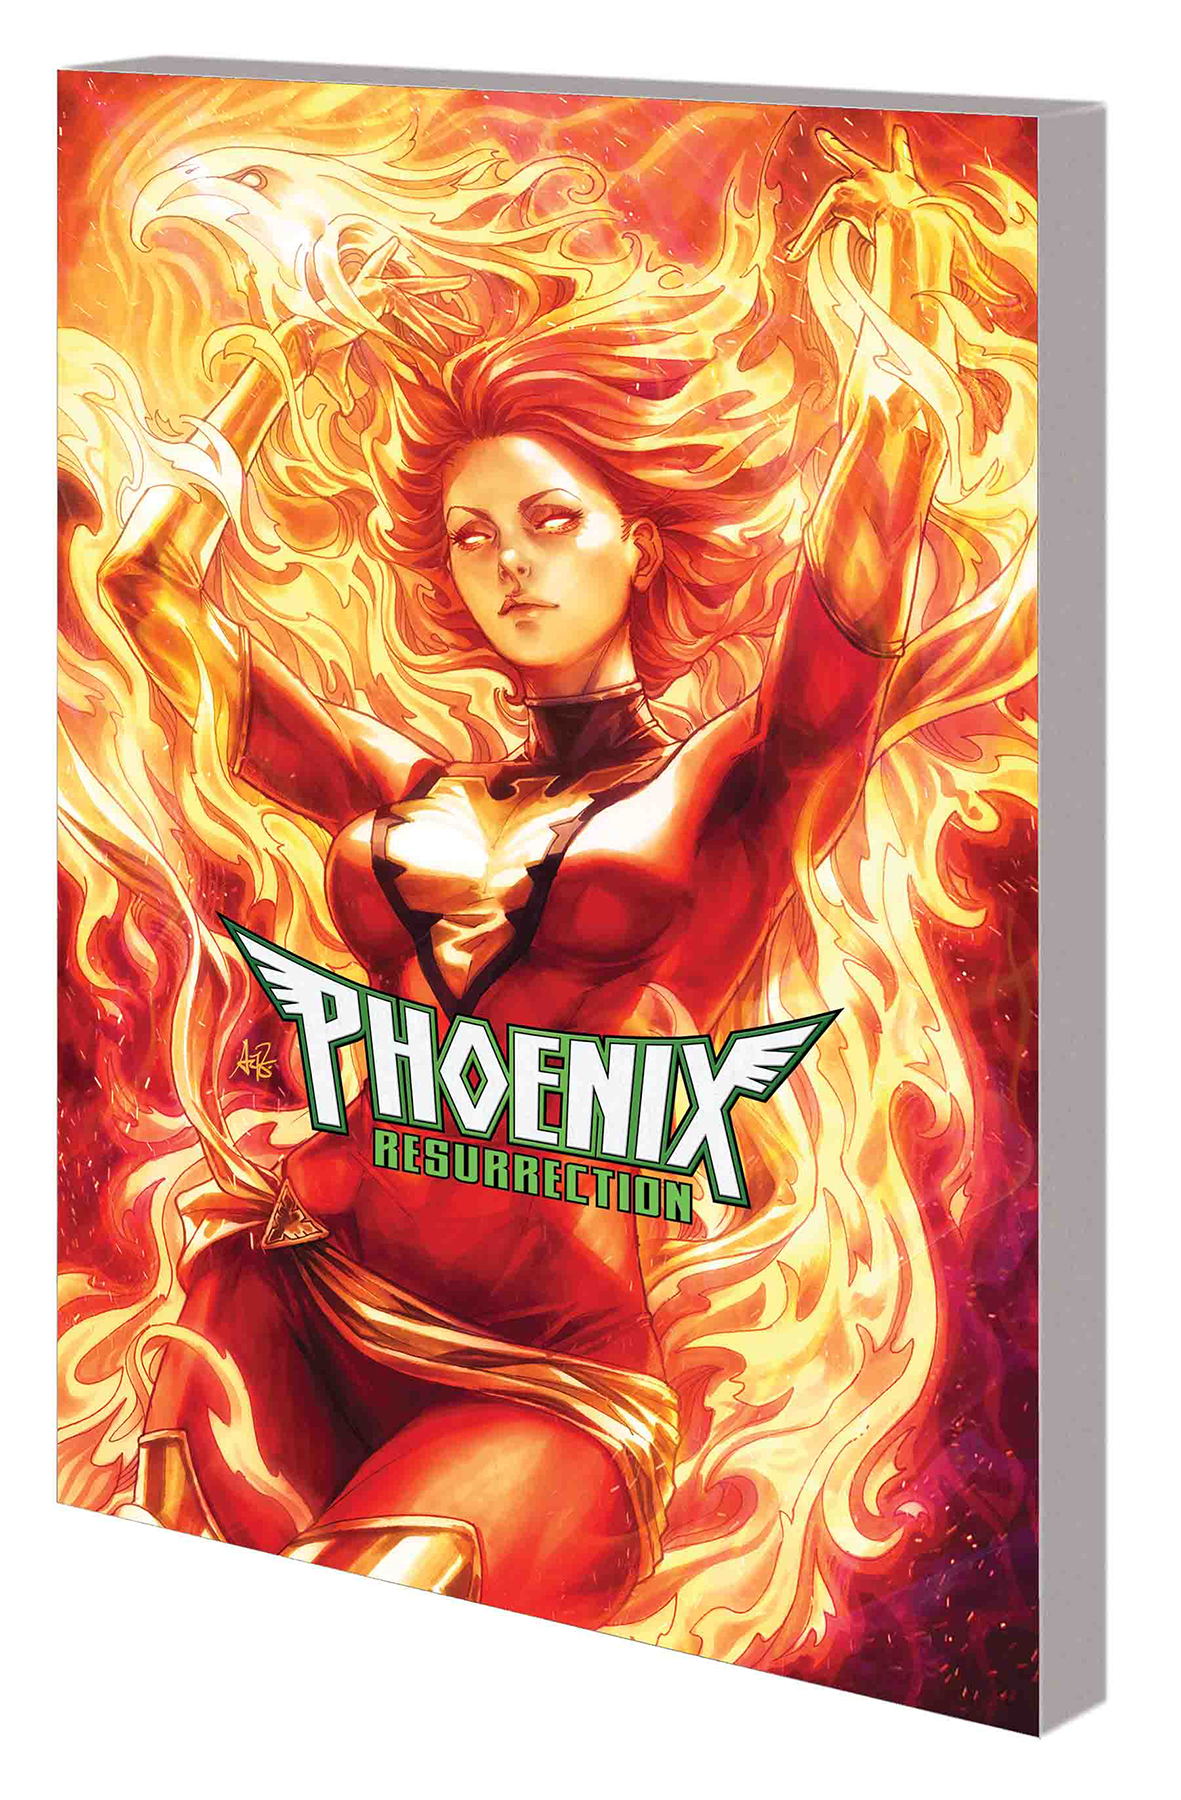 PHOENIX RESURRECTION RETURN JEAN GREY TP ARTGERM DM VAR